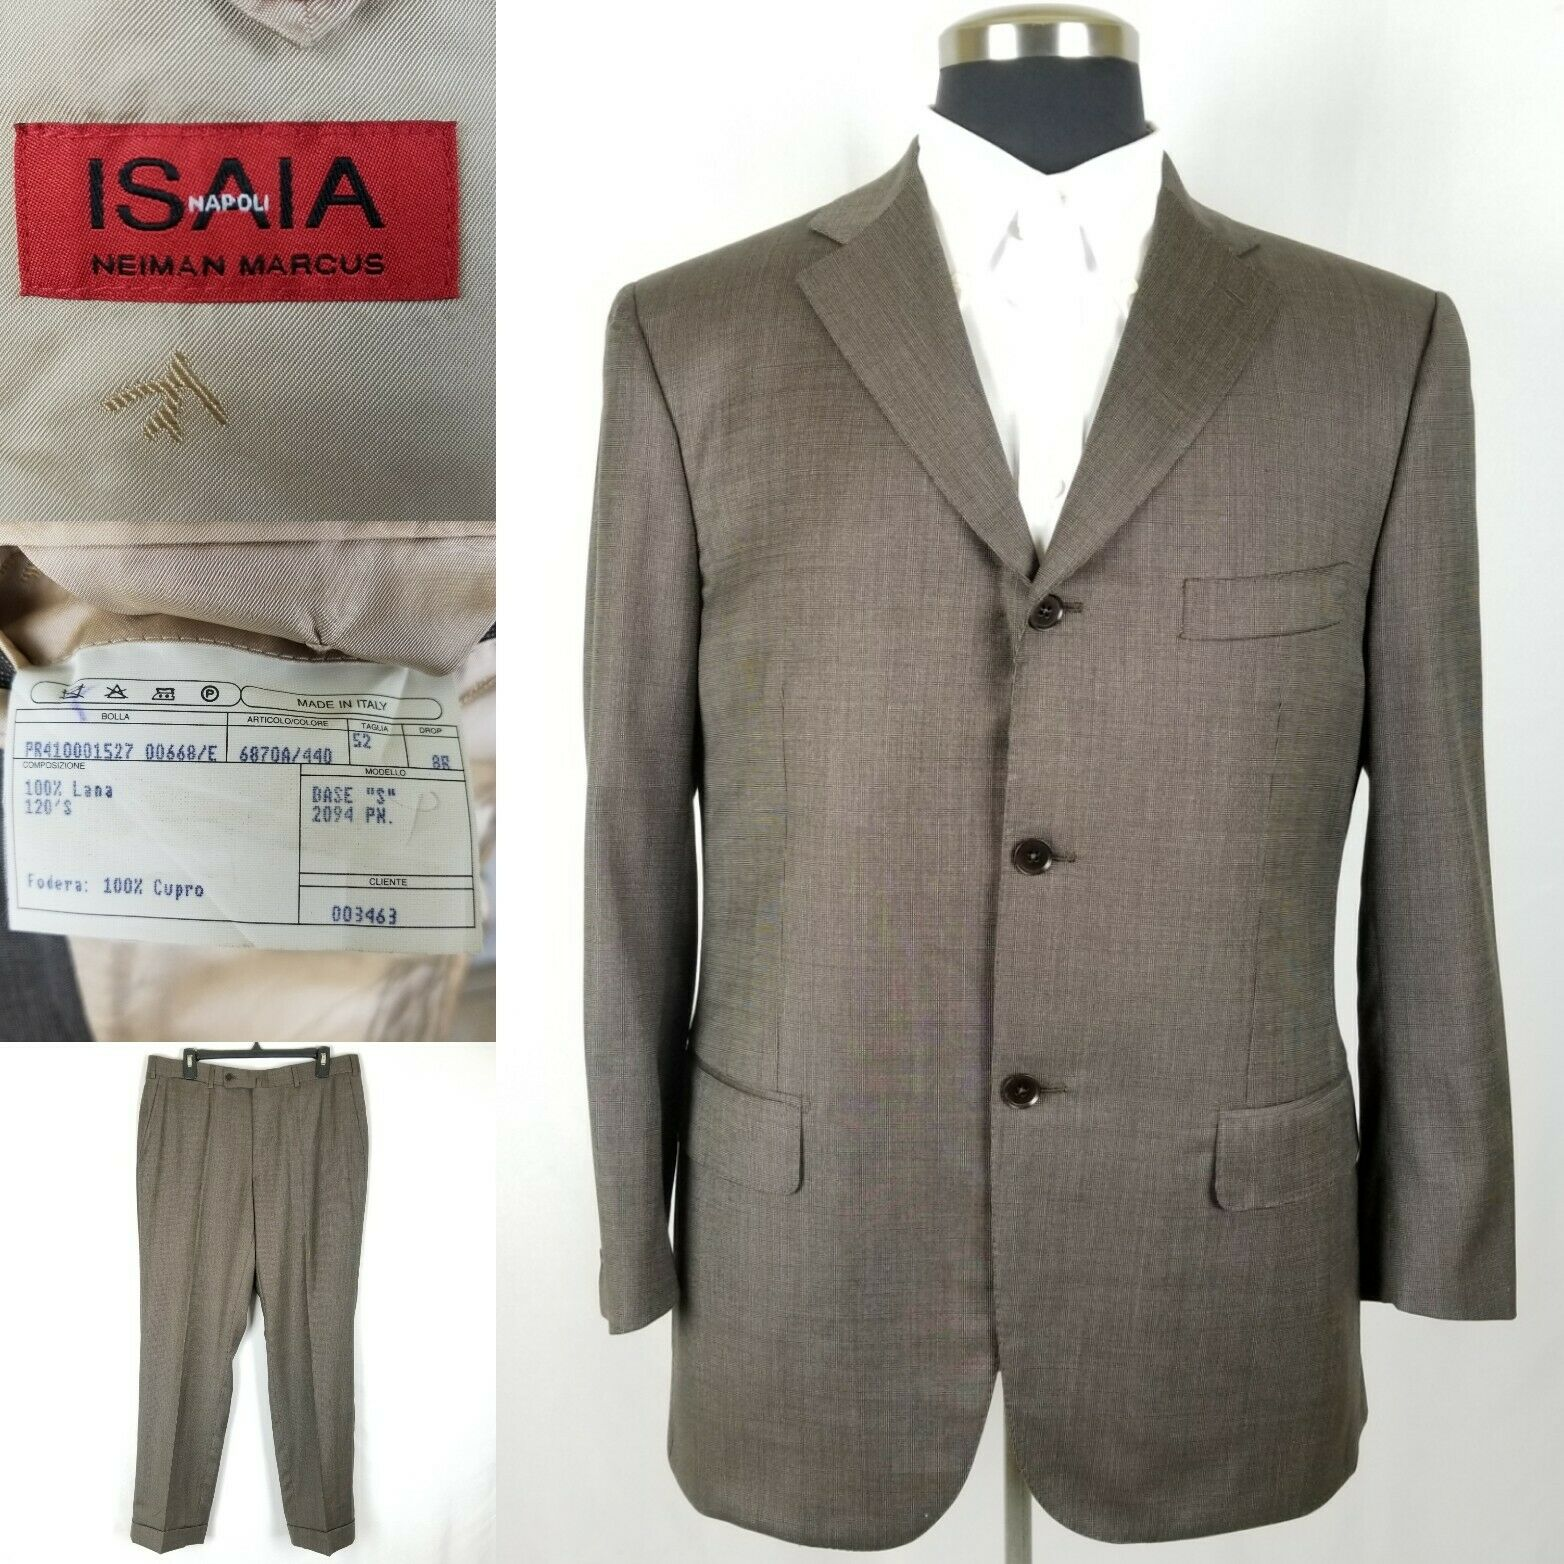 Isaia Napoli Neiman Marcus Super 120's Brown Wool Suit Men's Size 42R US